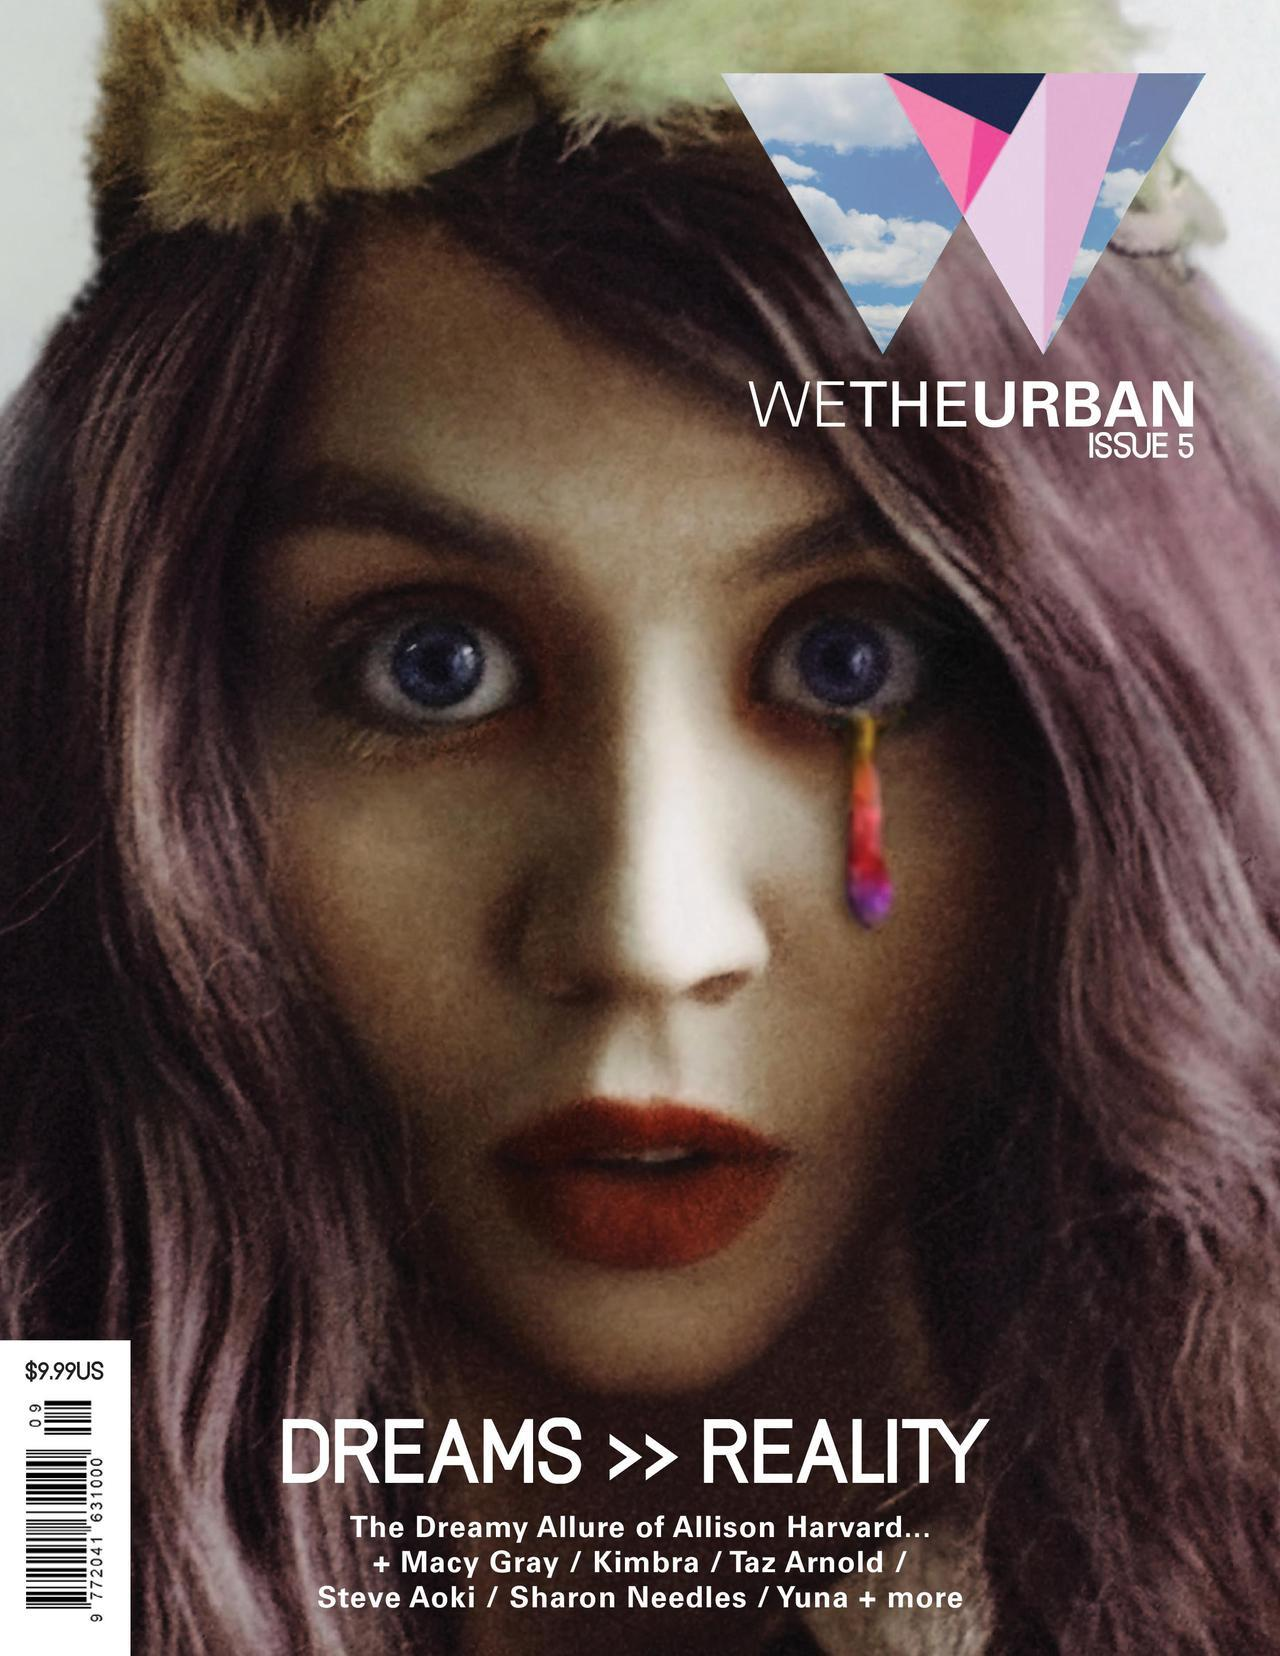 Exciting! :D so happy to be a part of issue five ^.^  wetheurban:  ALLISON HARVARD FOR WETHEURBAN MAGAZINE ISSUE 5  It's finally here! After just about a year, WeTheUrban is finally back! Tumblr's first ever blog turned syndicated magazine! Our lovely cover star is Allison Harvard who is shot by the very talented Zachary Chick. This issue will be on newsstands, available online, and available for iPad/iPhone download very soon. Stay tuned! P.S. TONIGHT @ 8:30PM EST - KARLA POWELL AND WETHEURBAN WILL BE LIVE ON BLOGTV GIVING AWAY A FREE PRINTED COPY OF THE FIRST ISSUE! (Be there or be square)!